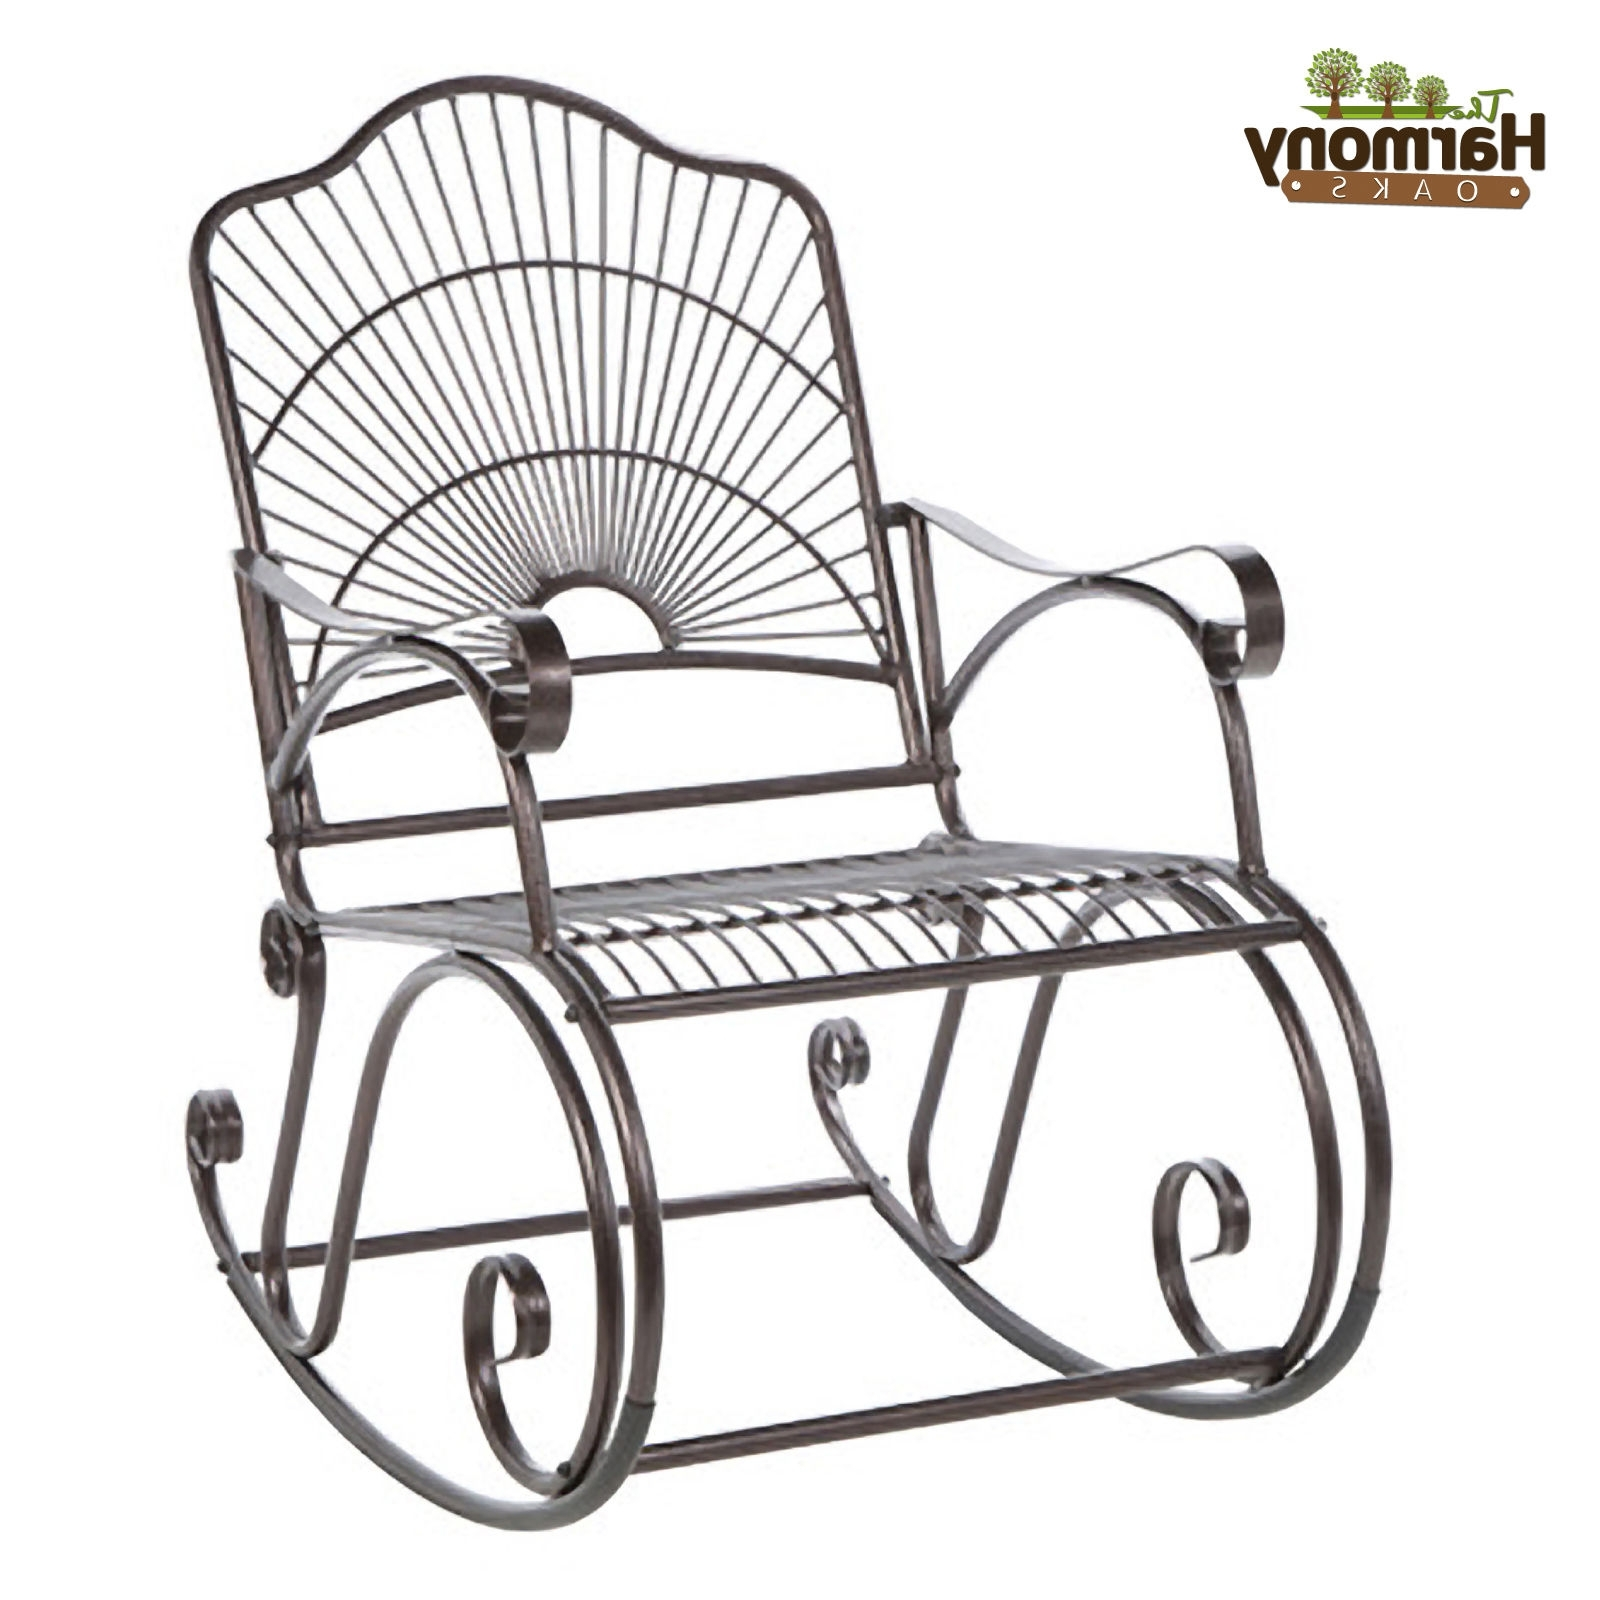 Wrought Iron Patio Rocking Chairs Regarding Most Current Rocker Wrought Iron Outdoor Patio Porch New Furniture Wrought Iron (View 12 of 15)